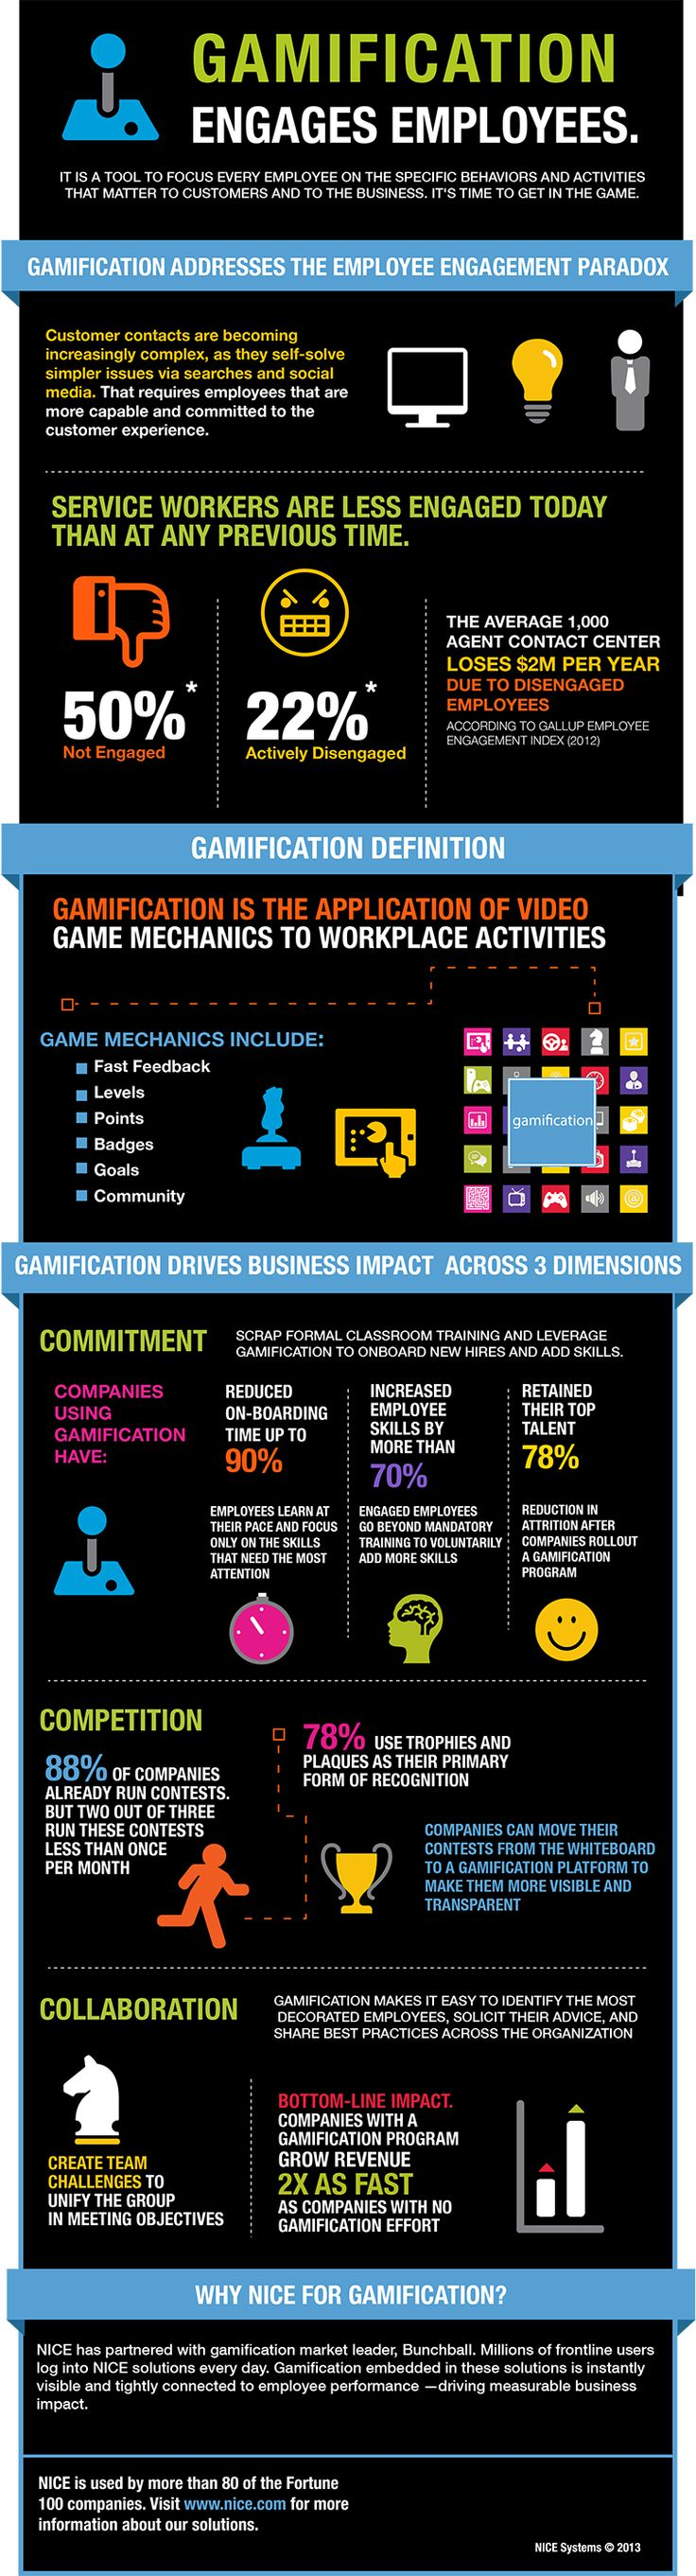 Performance Management - Gamification Infographic | NICE Systems